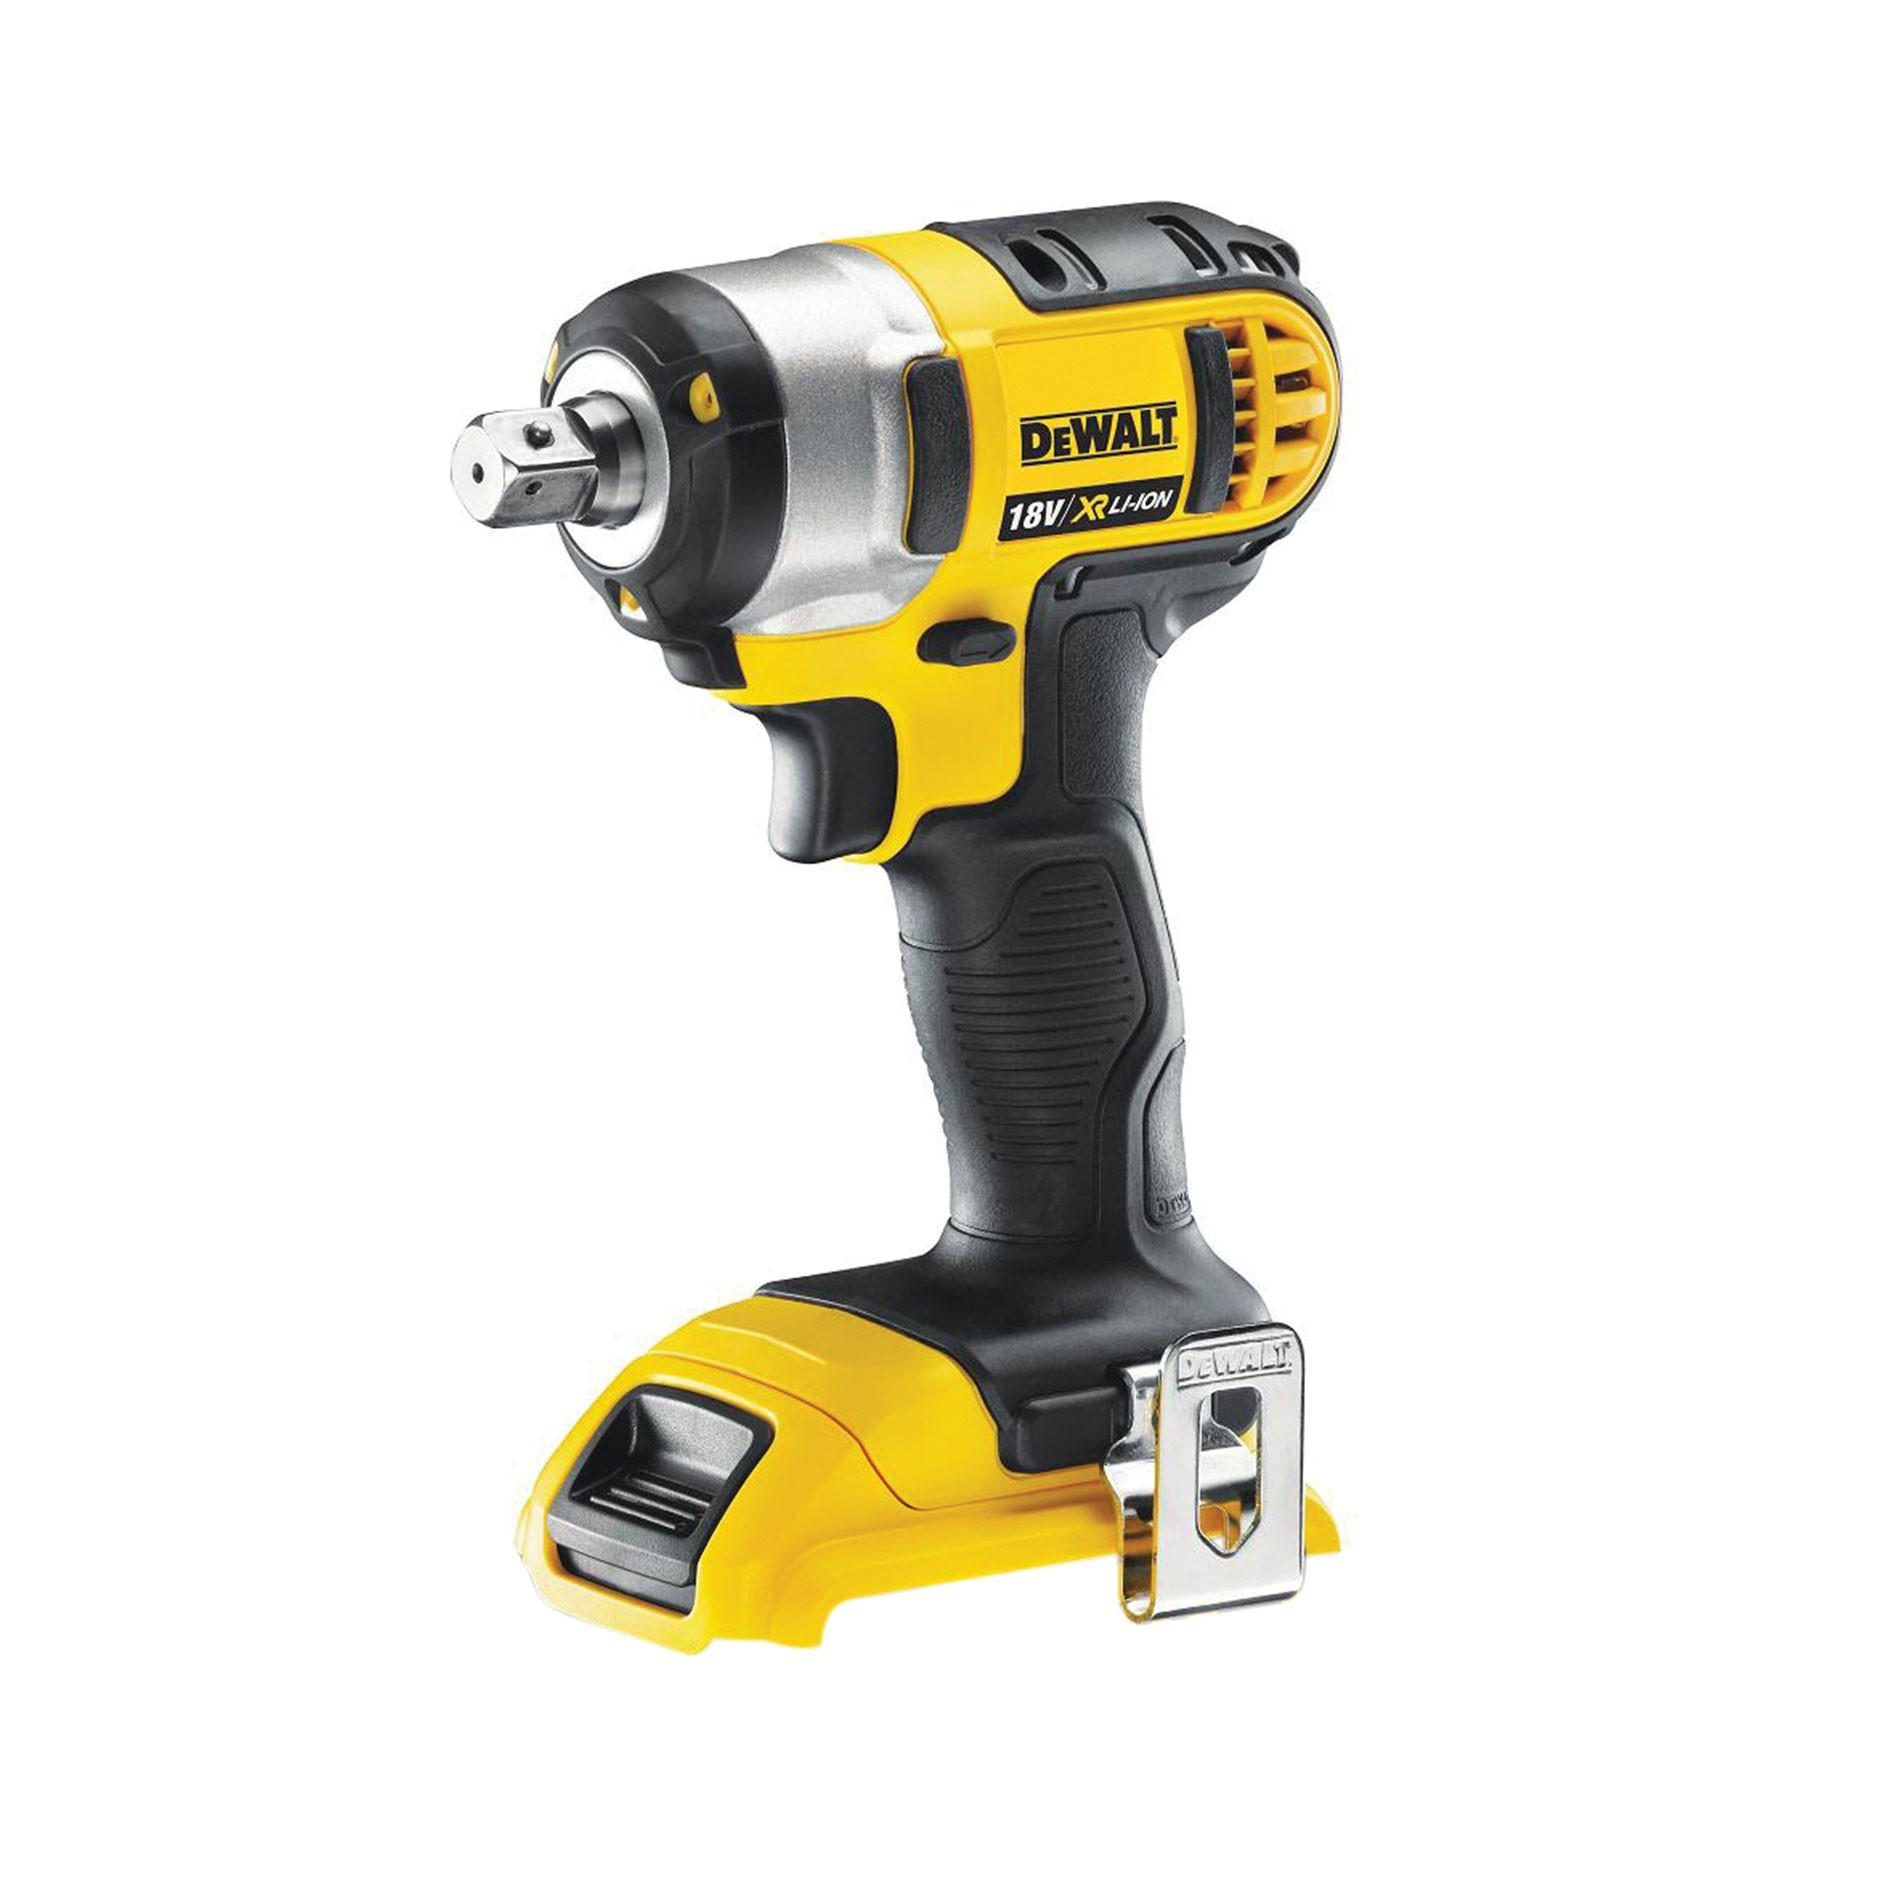 DeWalt DCF880N 18v XR Compact Impact Wrench Body Only